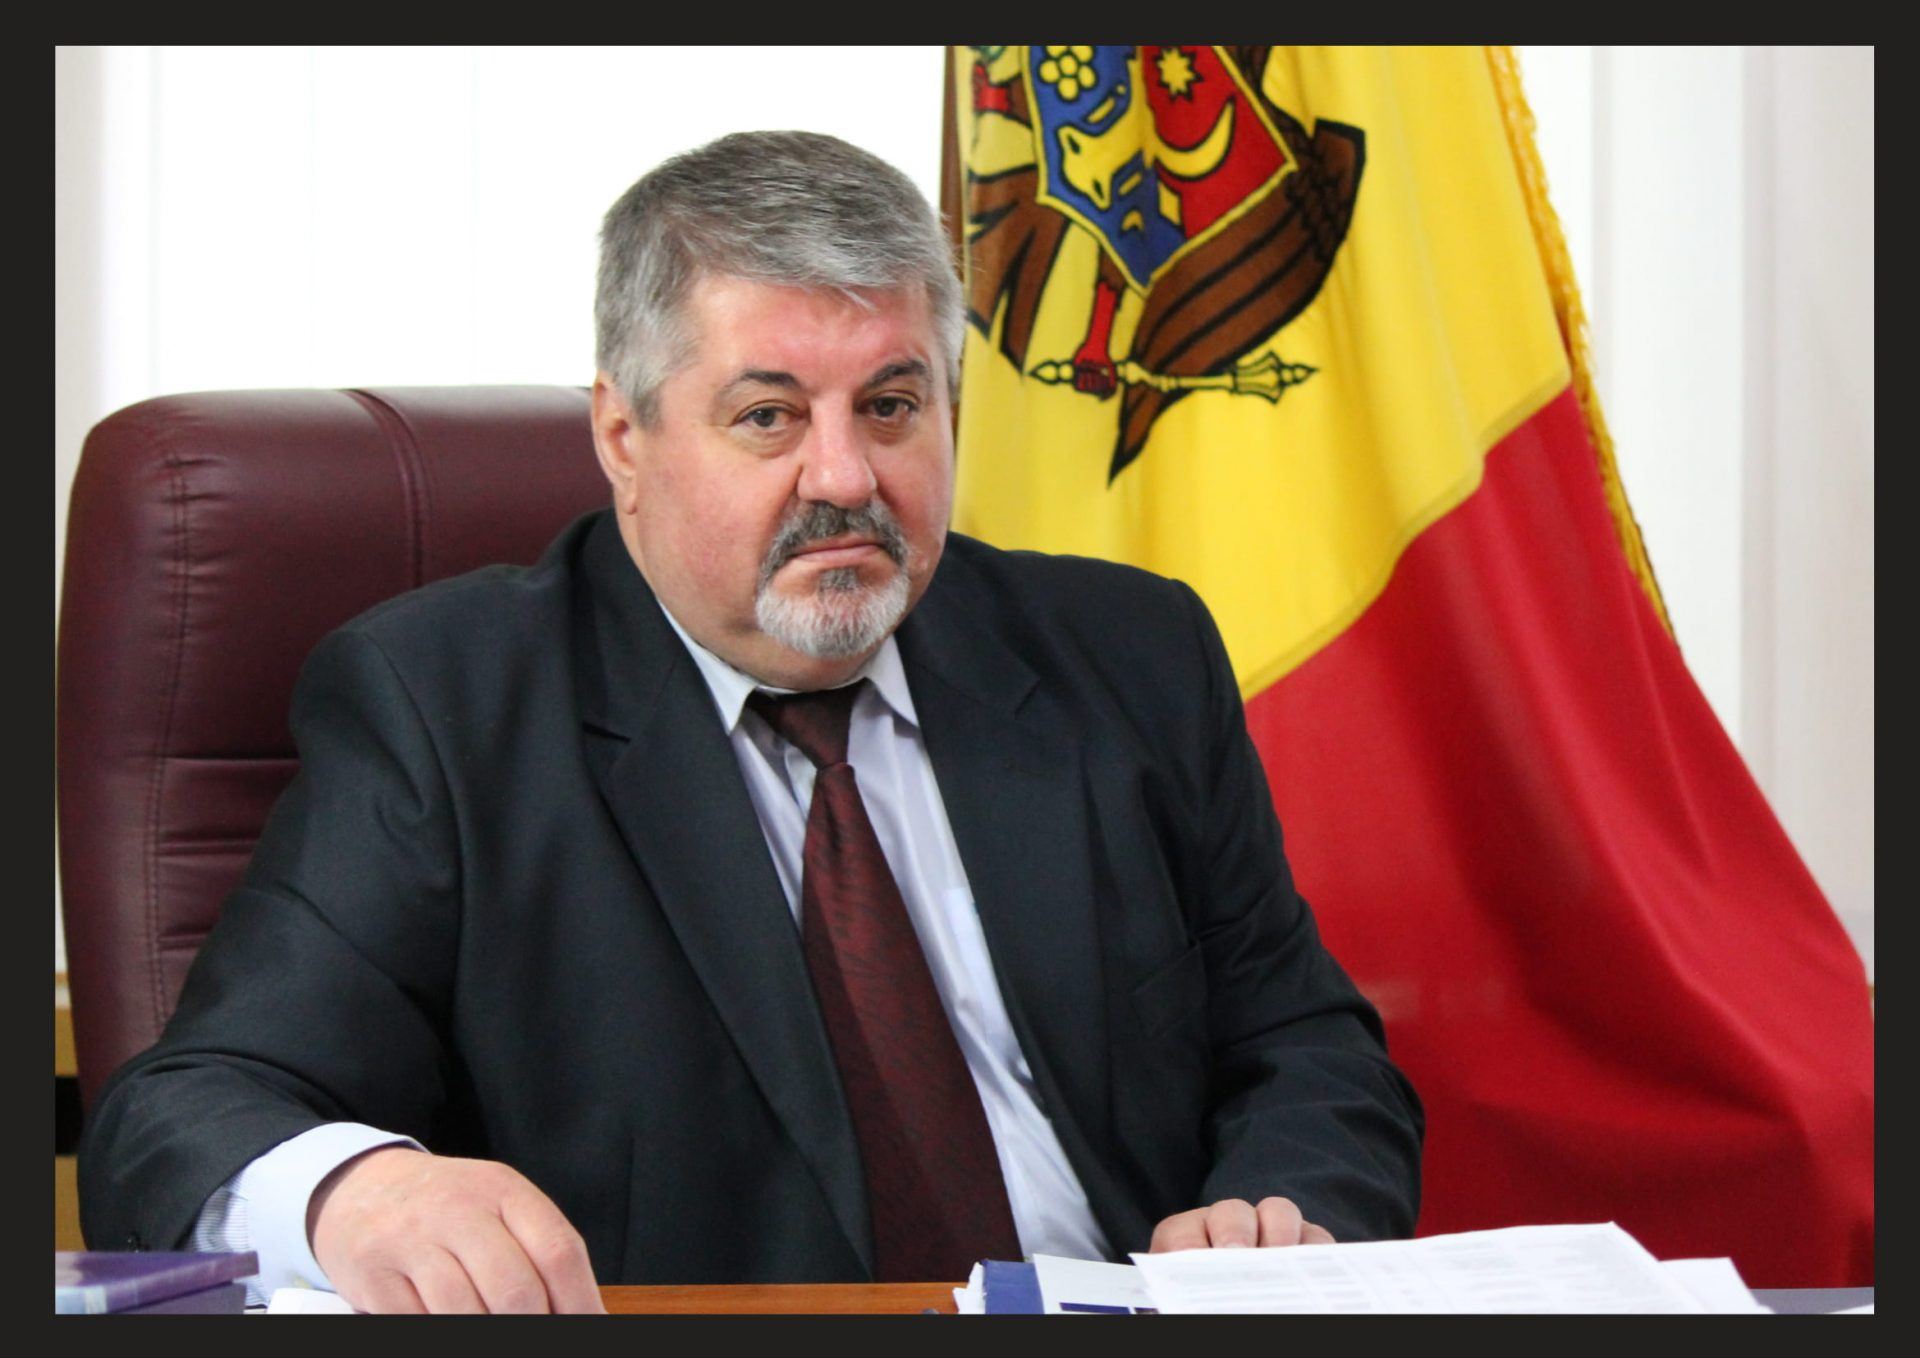 With deep sorrow, we found about the death of the Ombudsman, Mihail Cotorobai.